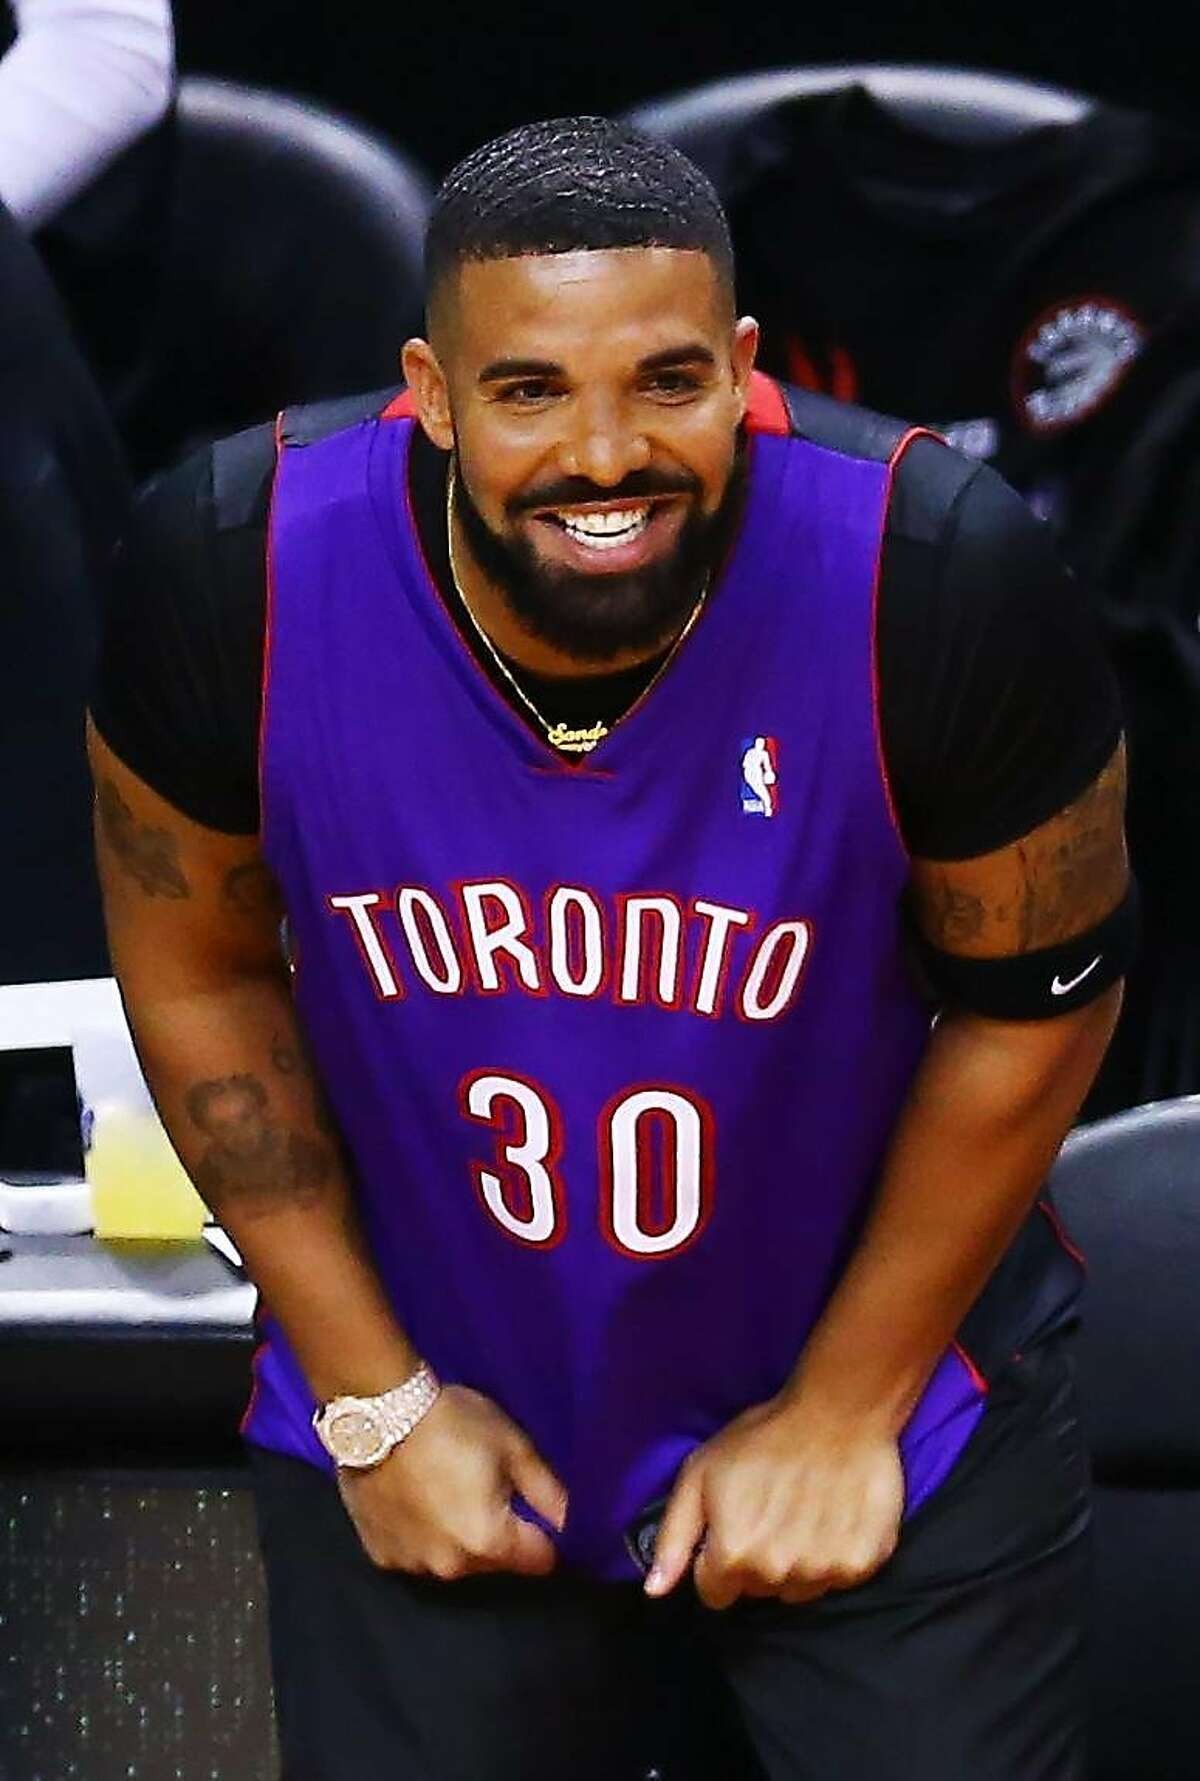 Rapper Drake is seen wearing a Dell Curry jersey before Game One of the 2019 NBA Finals between the Golden State Warriors and the Toronto Raptors at Scotiabank Arena on May 30, 2019 in Toronto.